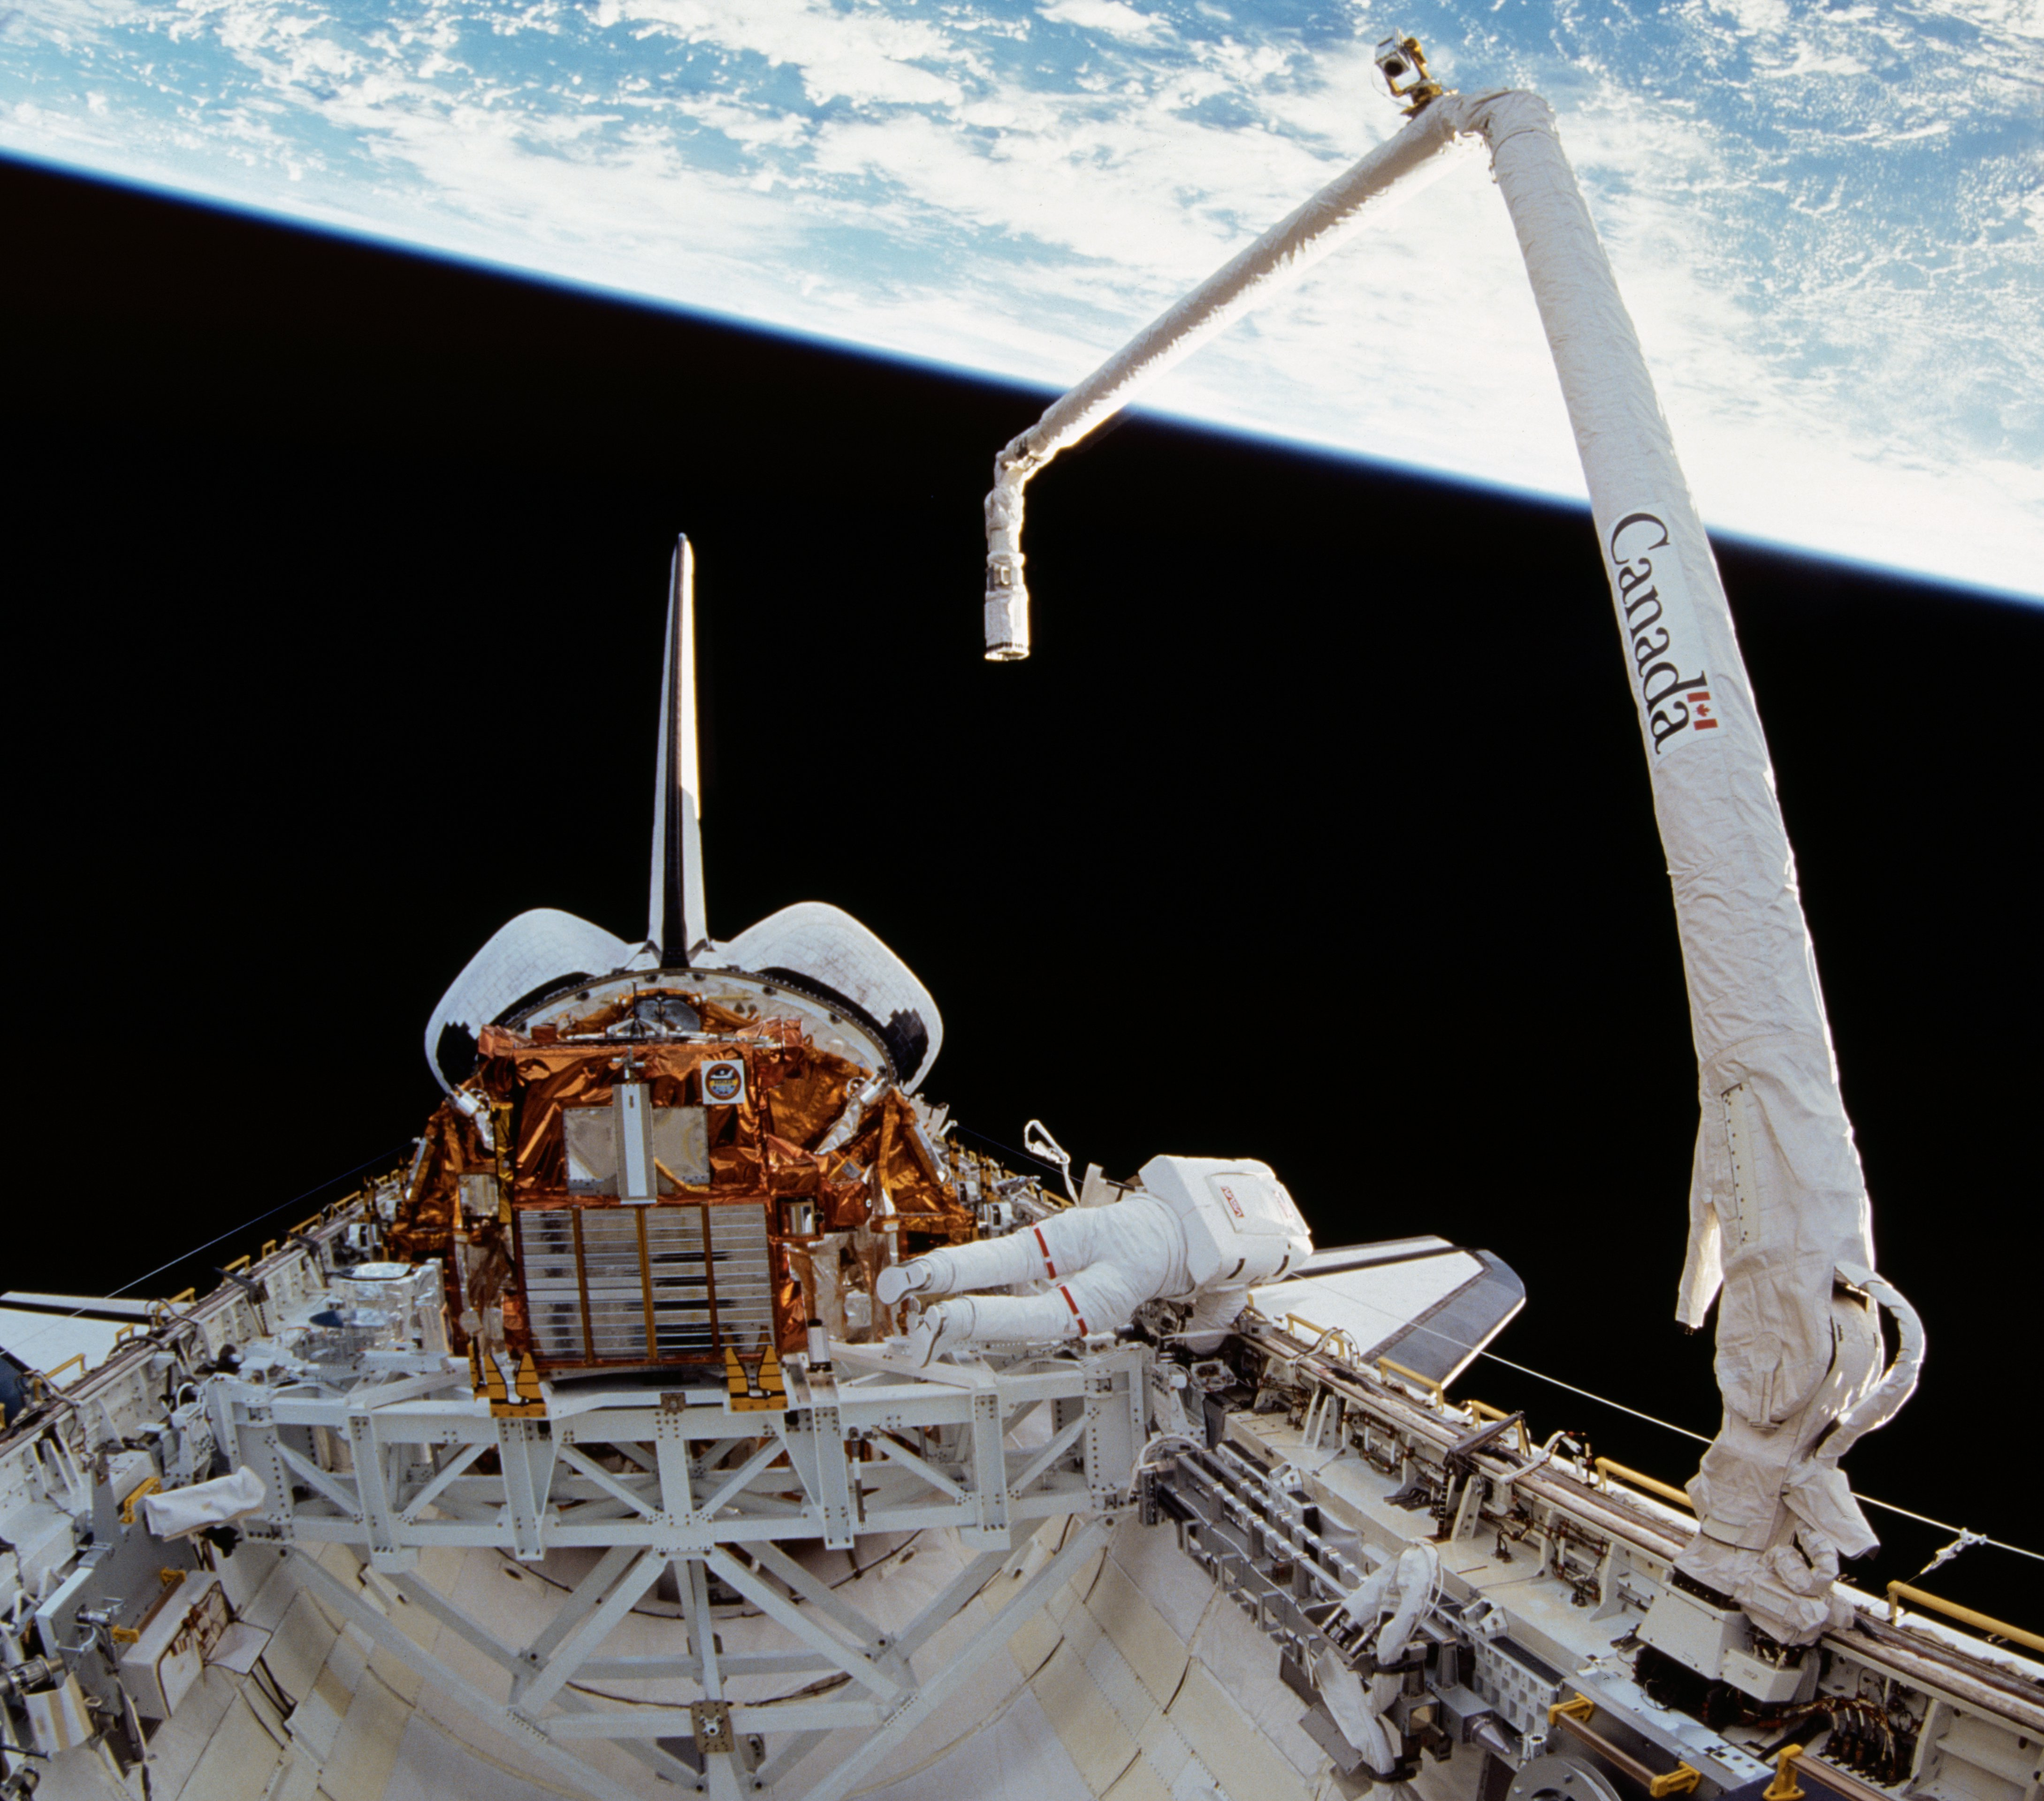 Space shuttle and Canadarm with Earth in the background.